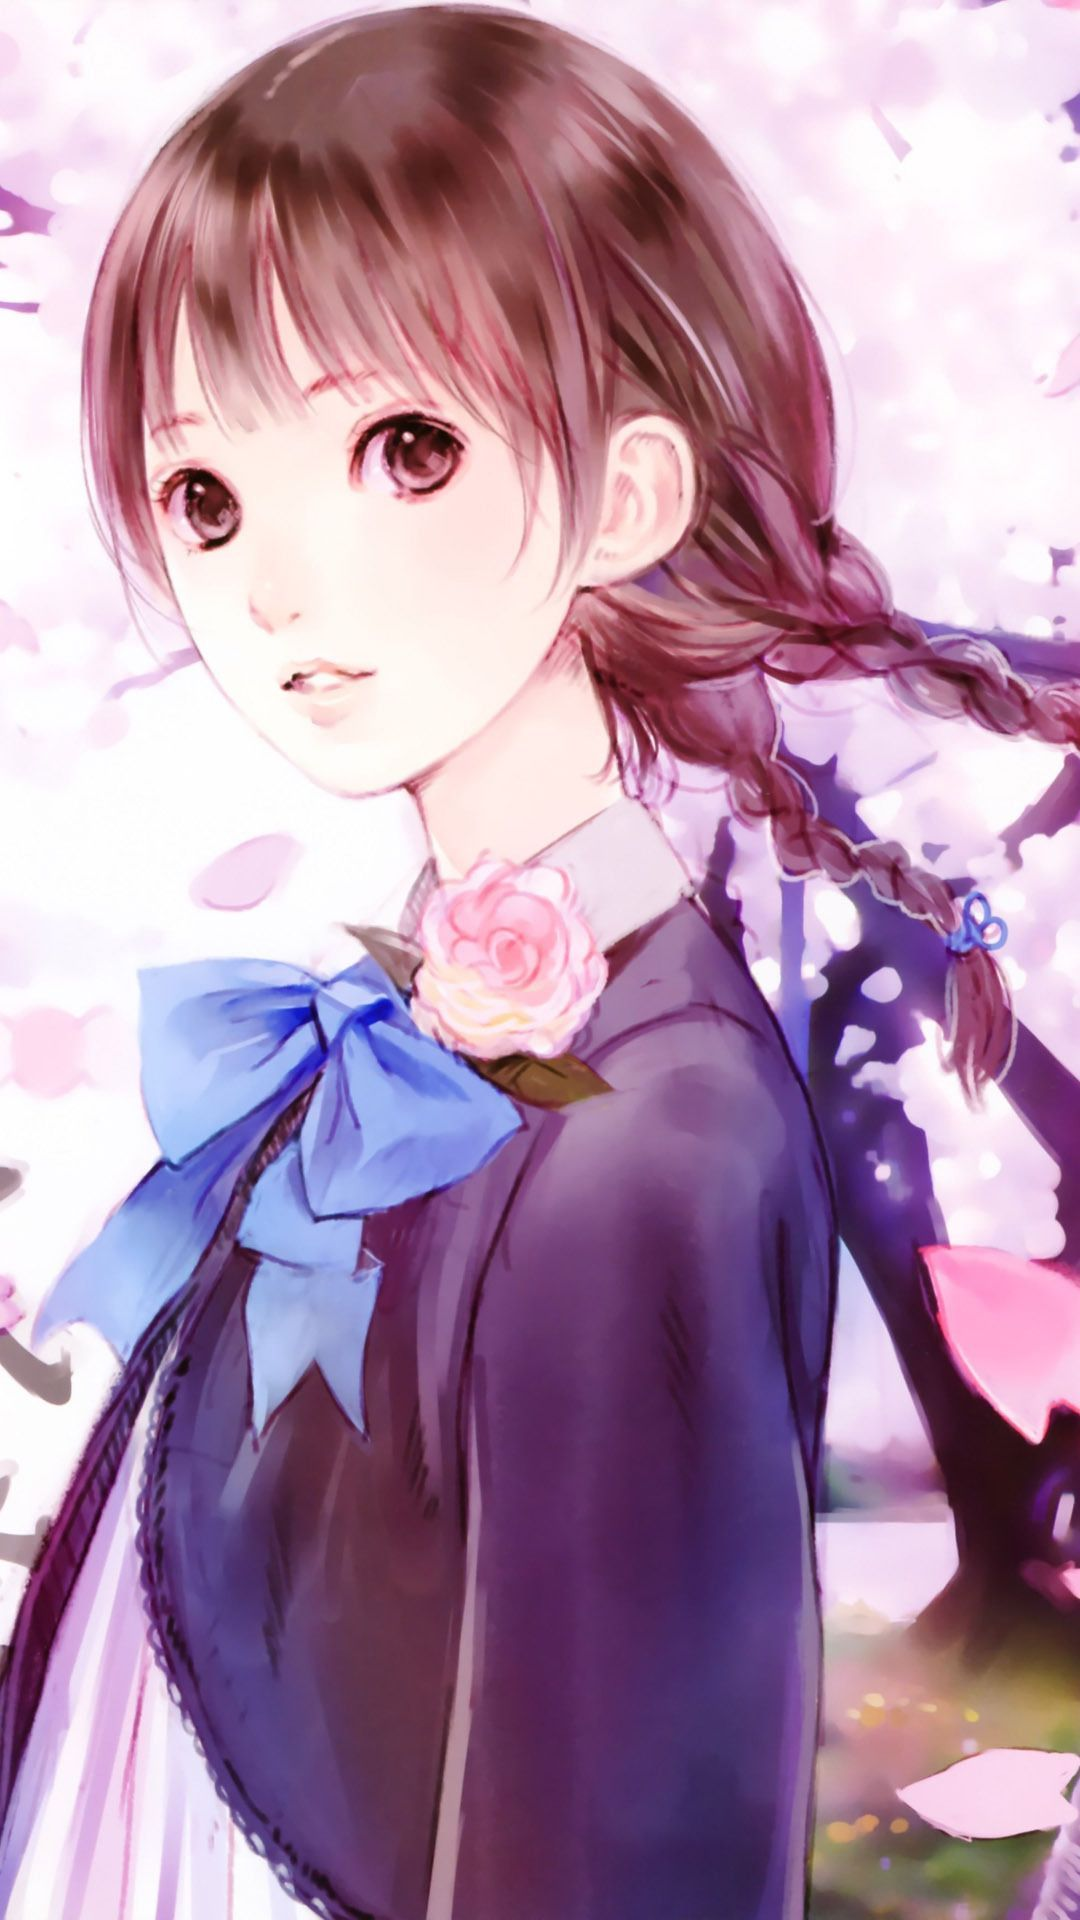 Related Image Anime In 2018 Pinterest Anime Anime Art And